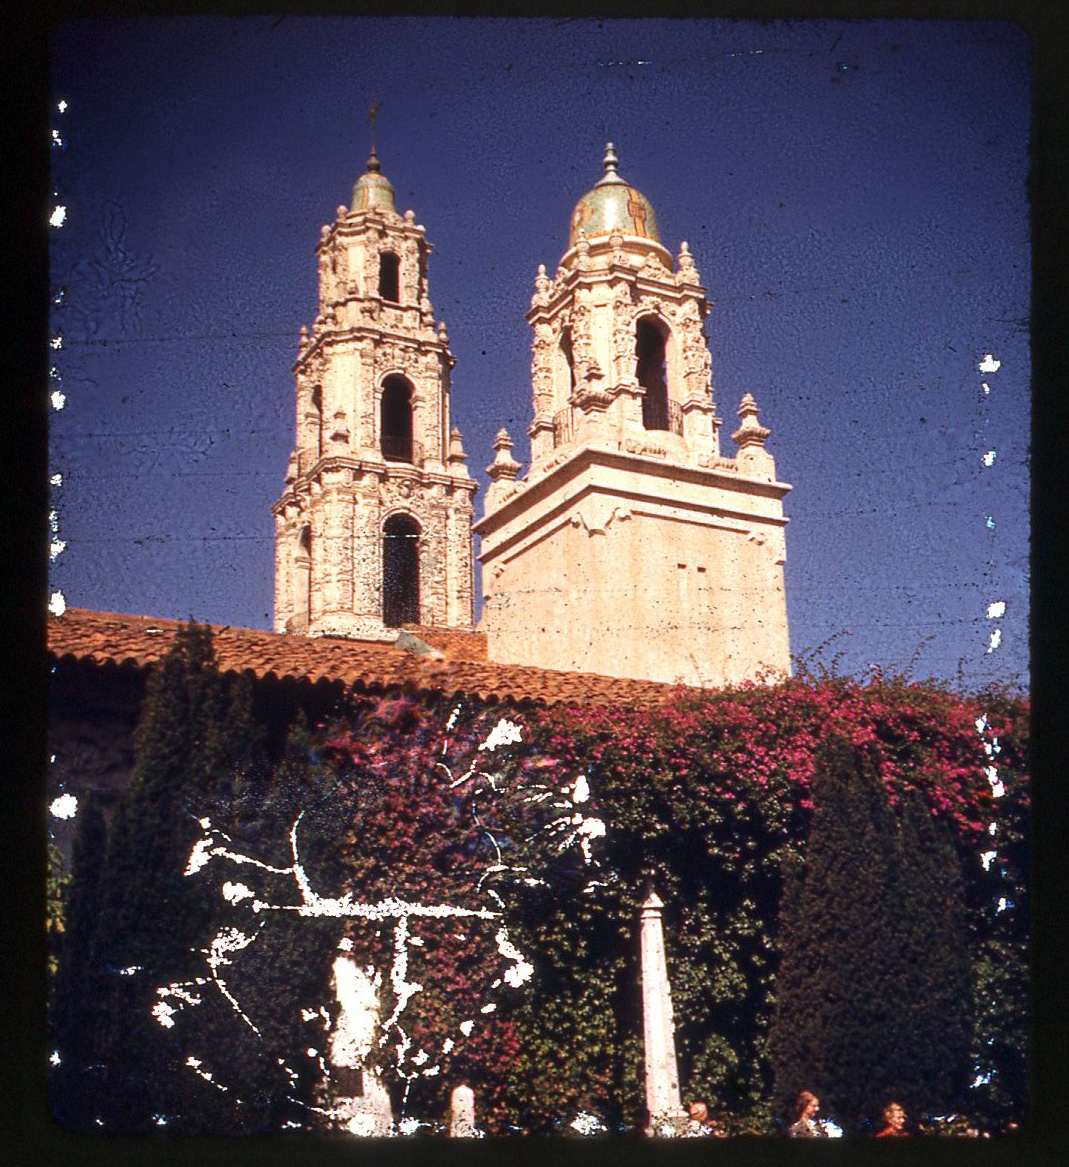 Mission San Francisco de Asís in the 1950s. Photo by Rob Ketcherside/Flickr.